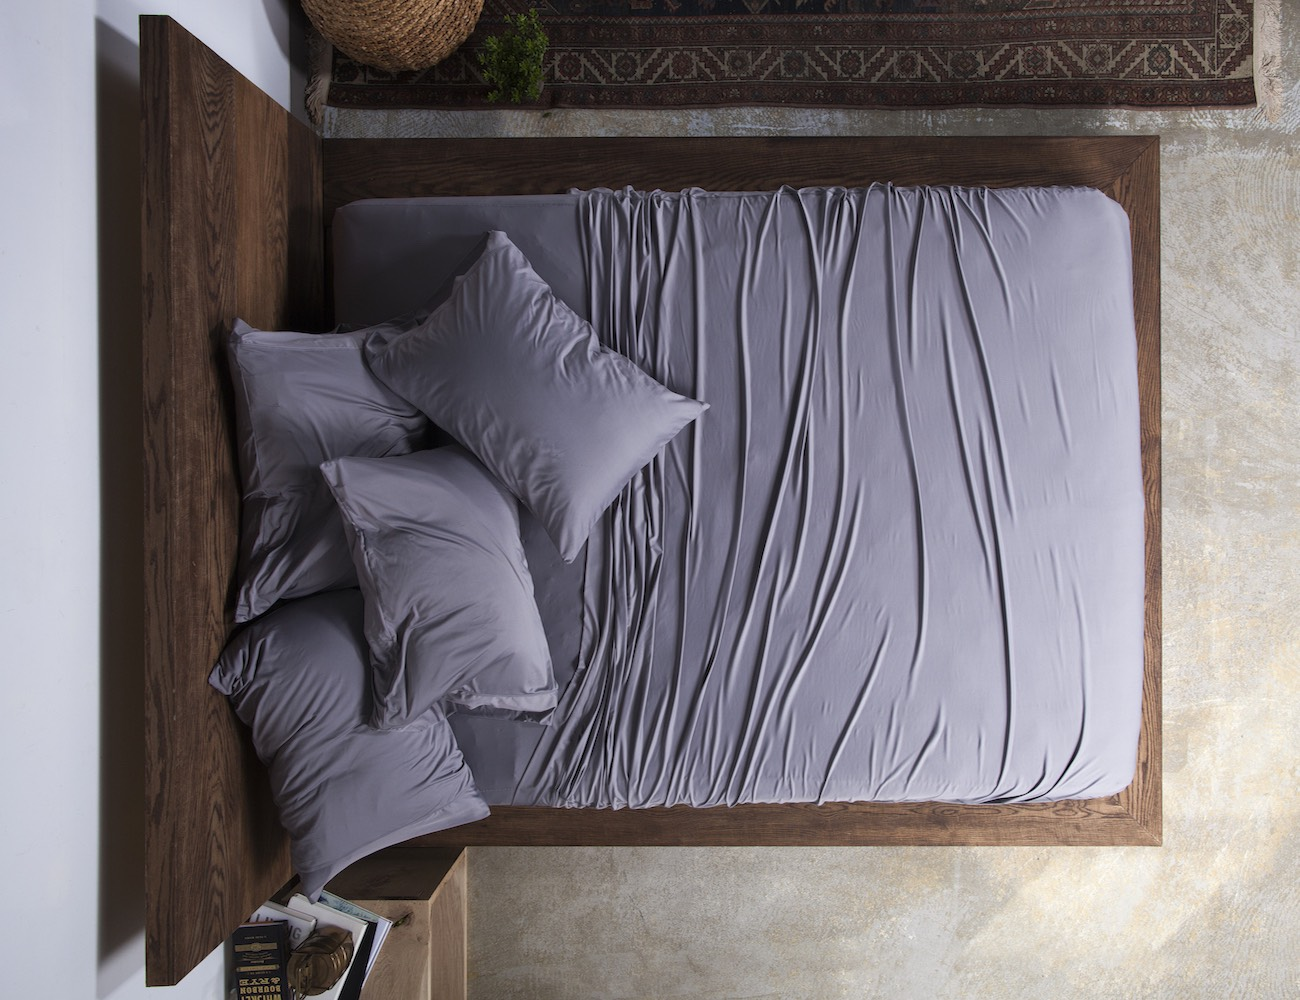 SHEEX® Performance Bedding and Sleepwear